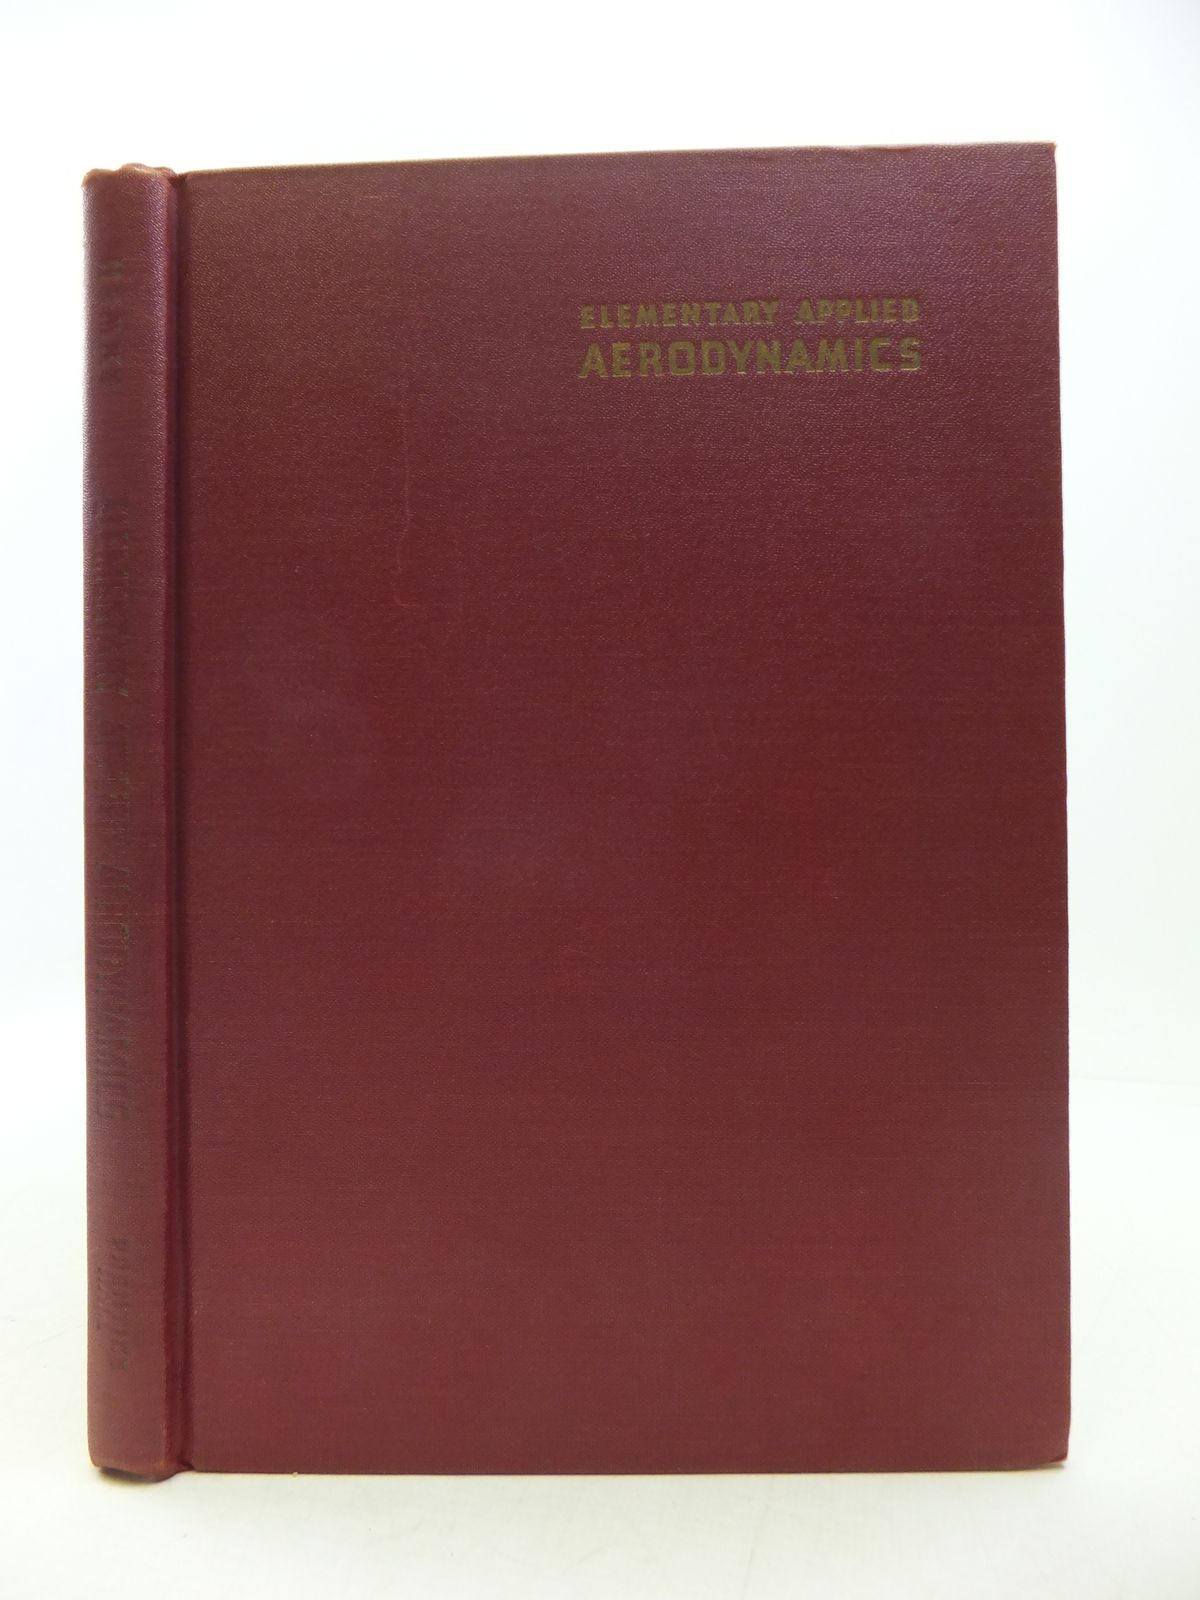 Photo of ELEMENTARY APPLIED AERODYNAMICS written by Hemke, Paul E. published by Constable and Company Ltd. (STOCK CODE: 1808159)  for sale by Stella & Rose's Books